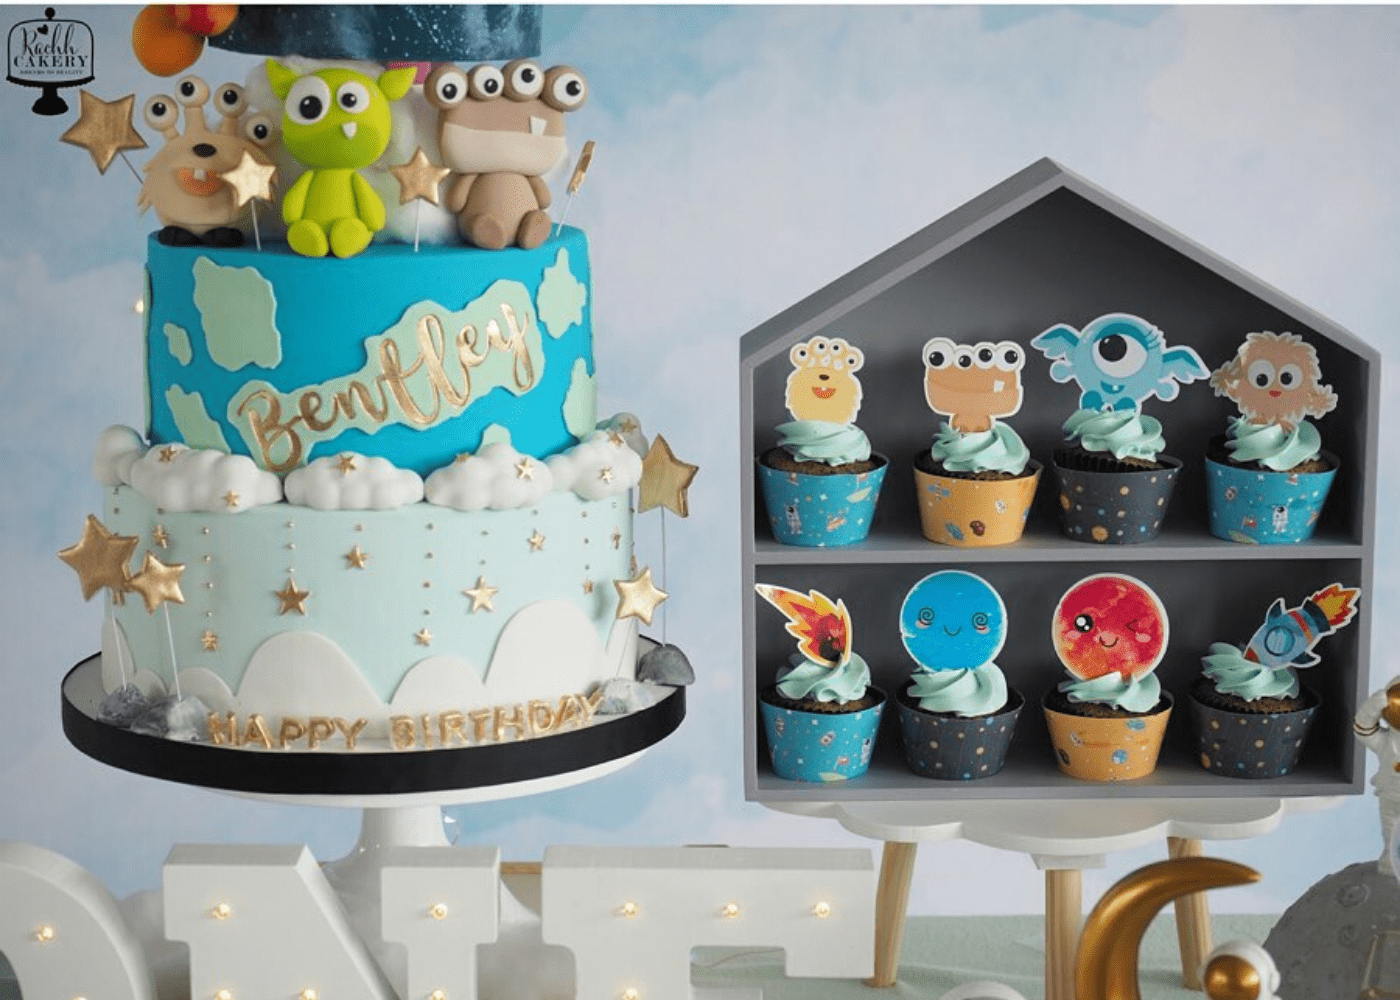 Rachh Cakery | Best birthday cakes for kids in Singapore